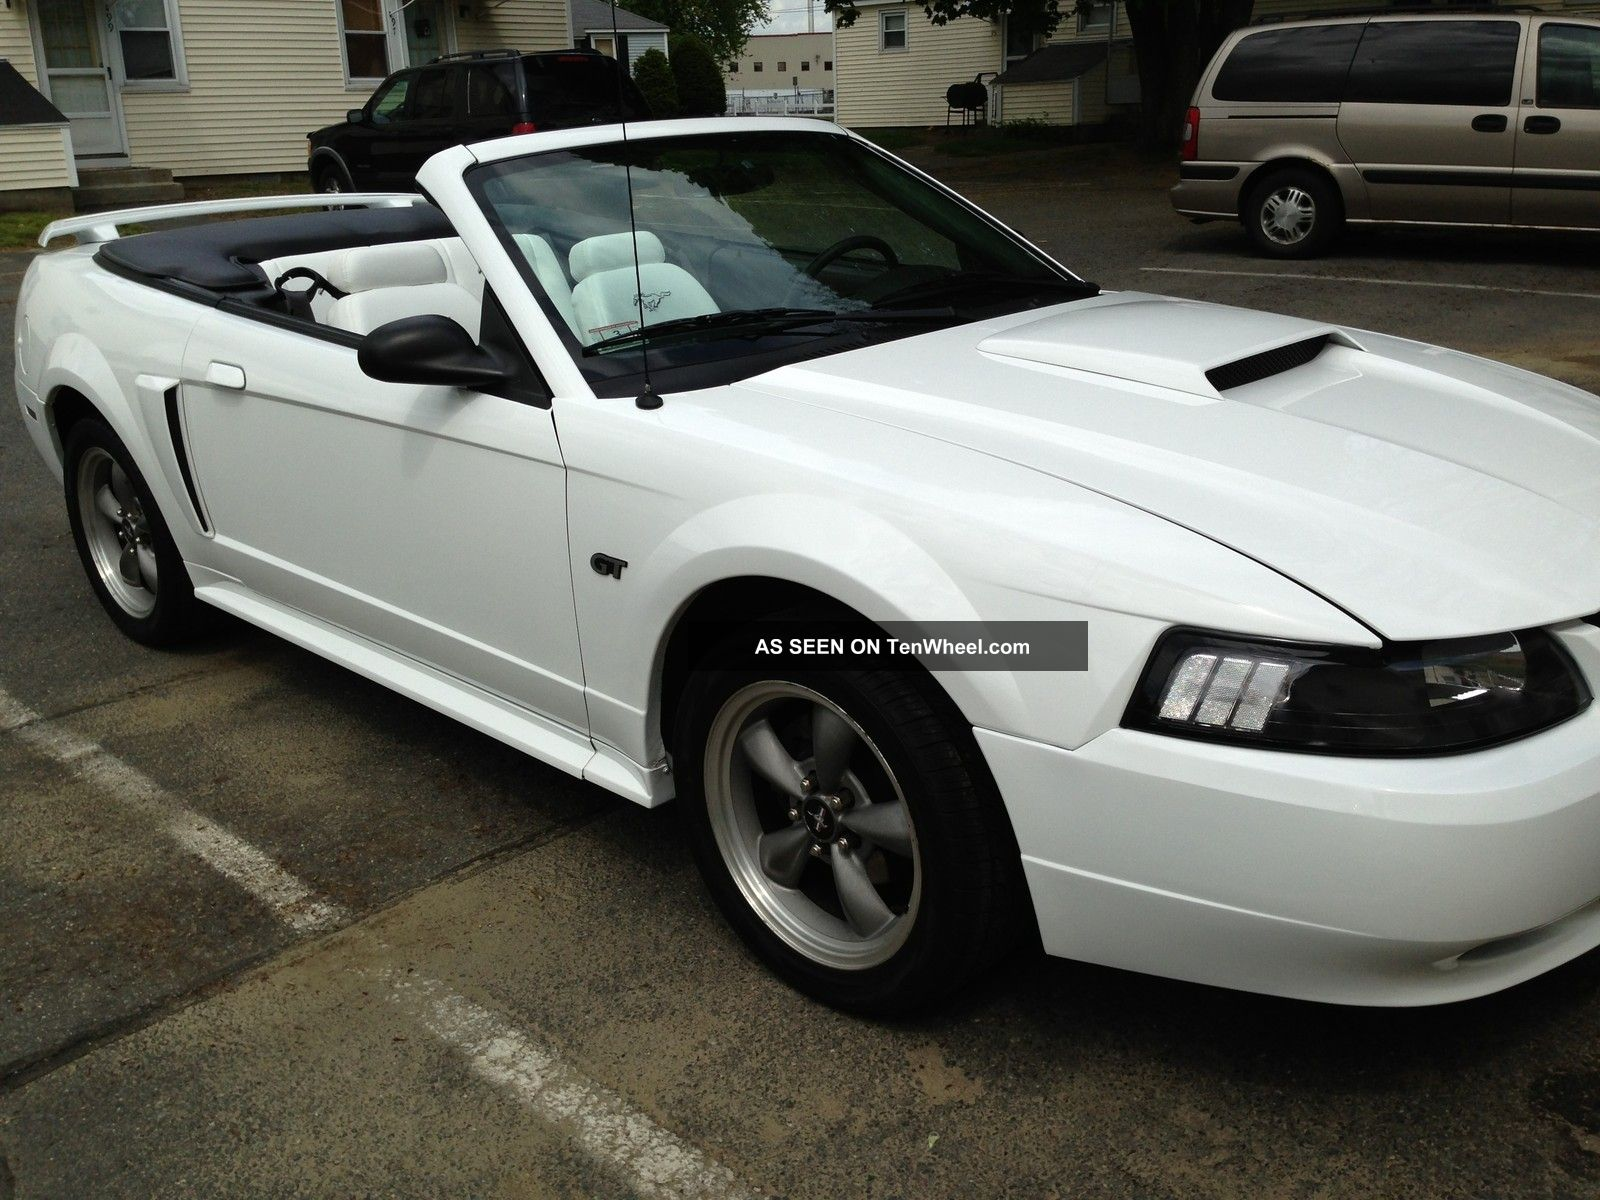 2001 ford mustang gt convertible v8 automatic fresh paint. Black Bedroom Furniture Sets. Home Design Ideas